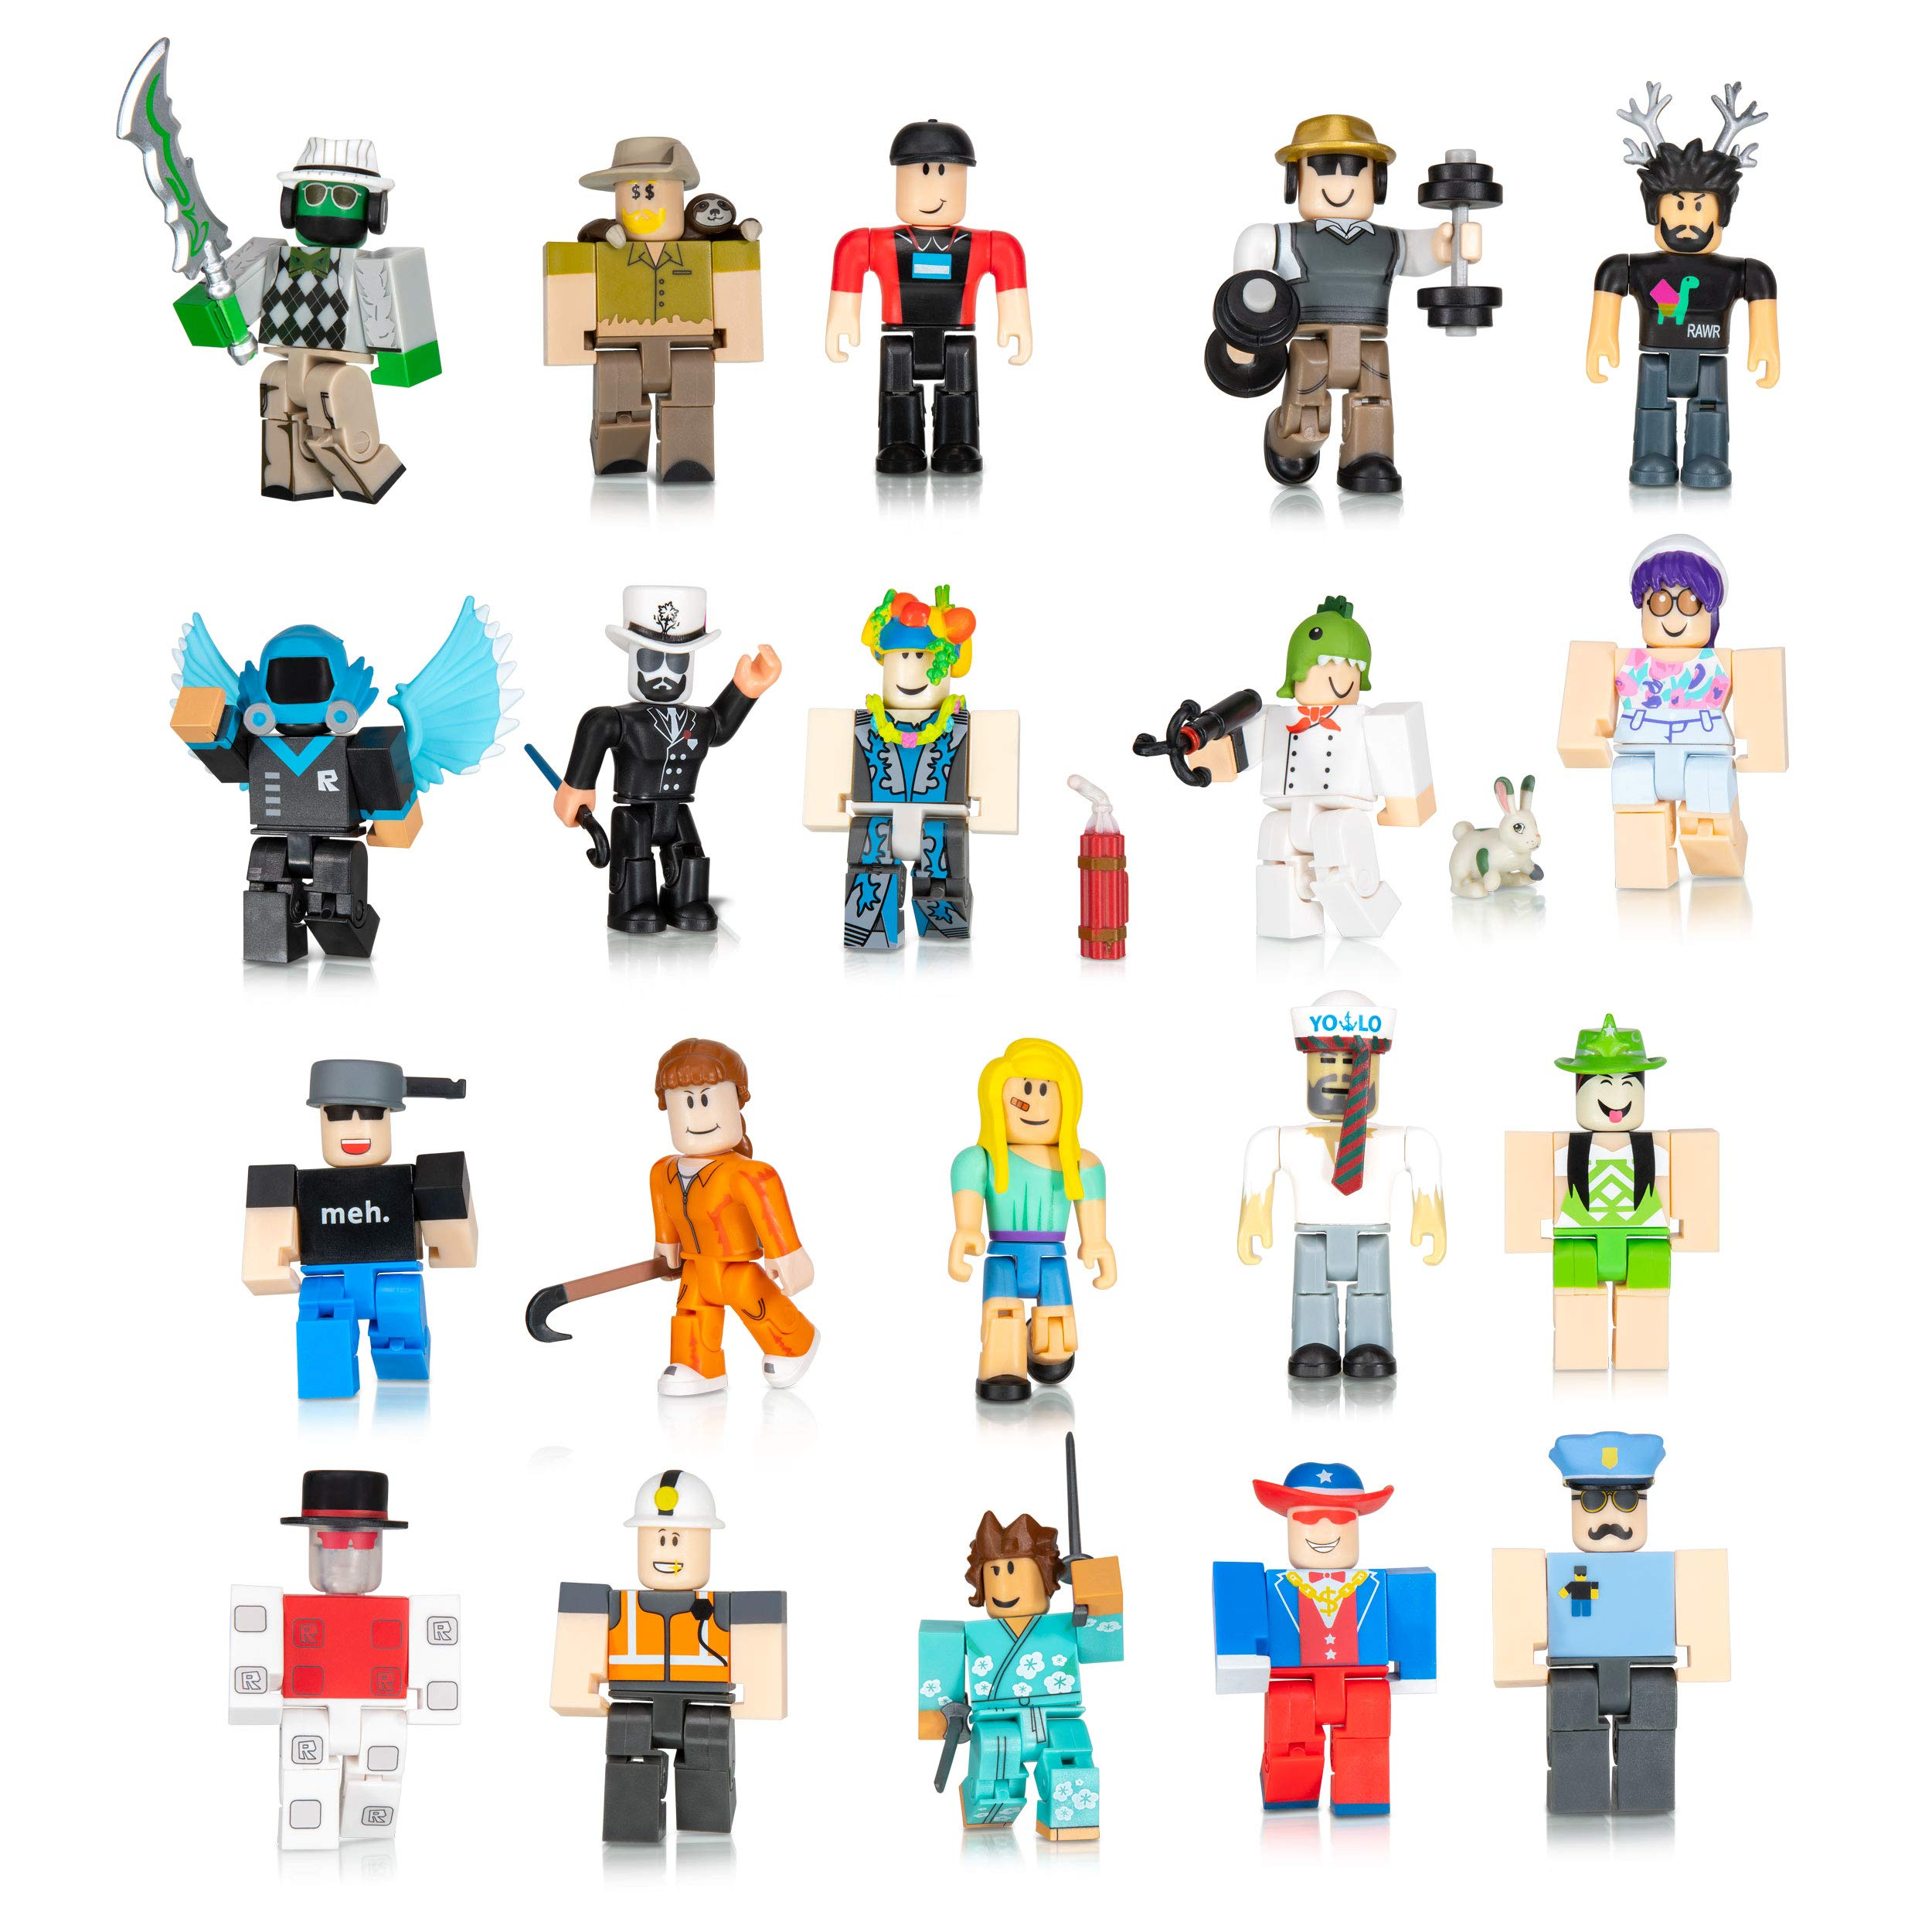 Roblox Figure Toys Games Action Figures Collectibles On Amazon Com Roblox Action Collection From The Vault 20 Figure Pack Includes 20 Exclusive Virtual Items Toys Games